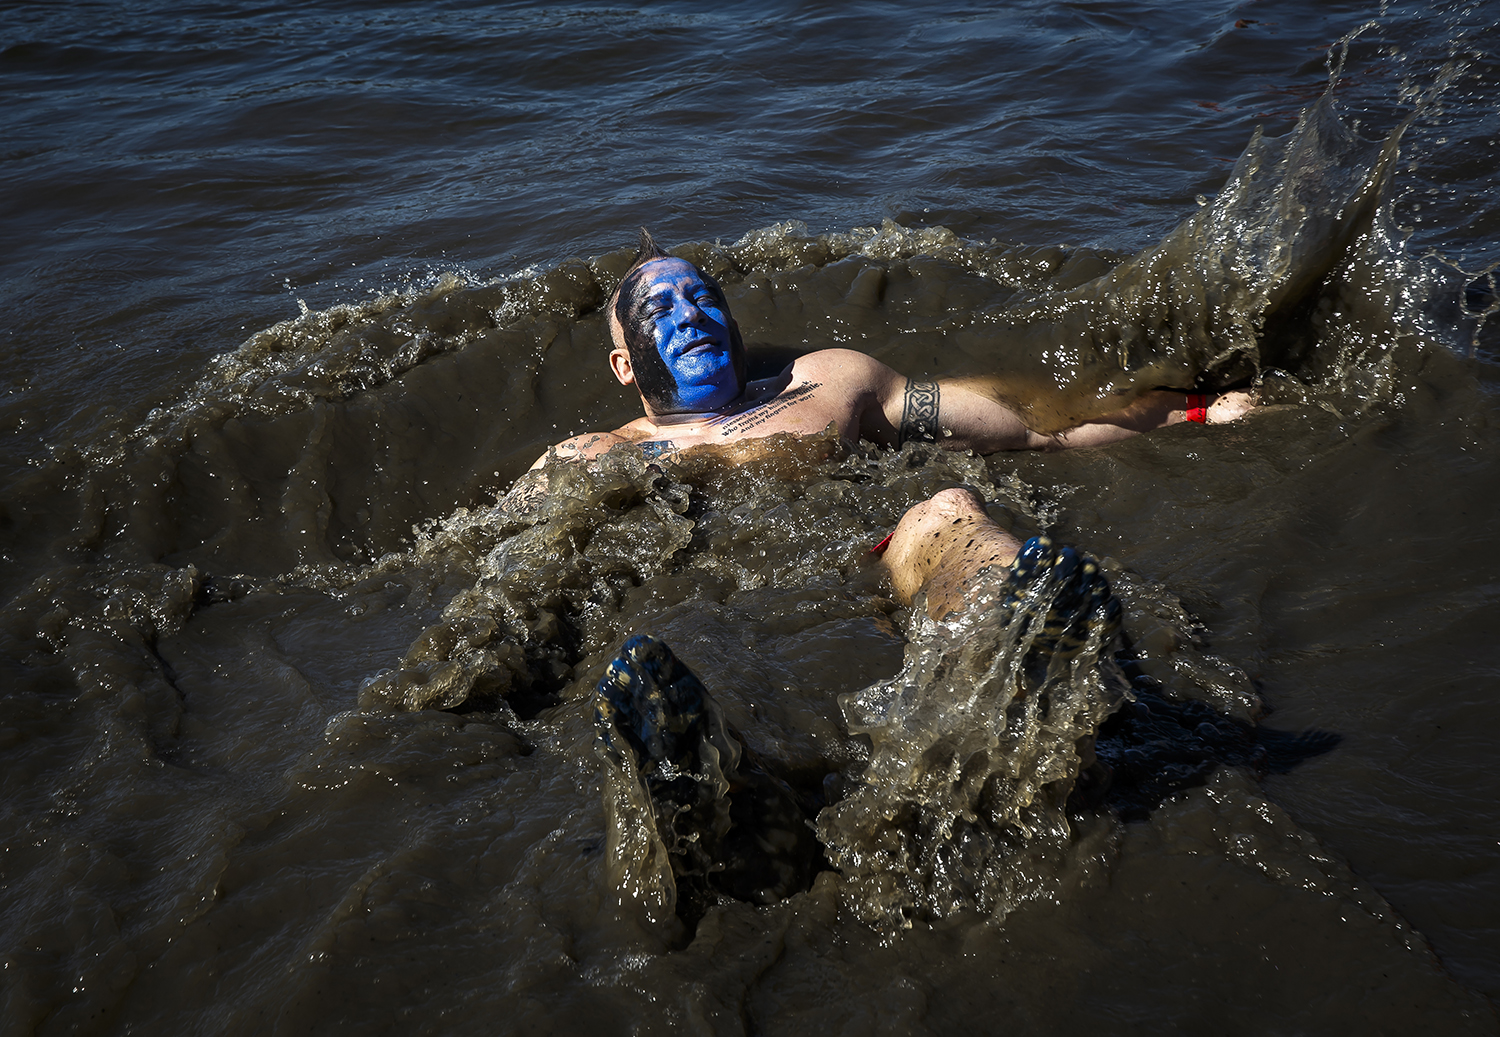 Shane Overby, with the Springfield Police Dept., takes a dip in the water during the 2018 Polar Plunge benefiting the Special Olympics Illinois on Lake Springfield at the Knights of Columbus Lake Club, Saturday, March 3, 2018, in Springfield, Ill. [Justin L. Fowler/The State Journal-Register]